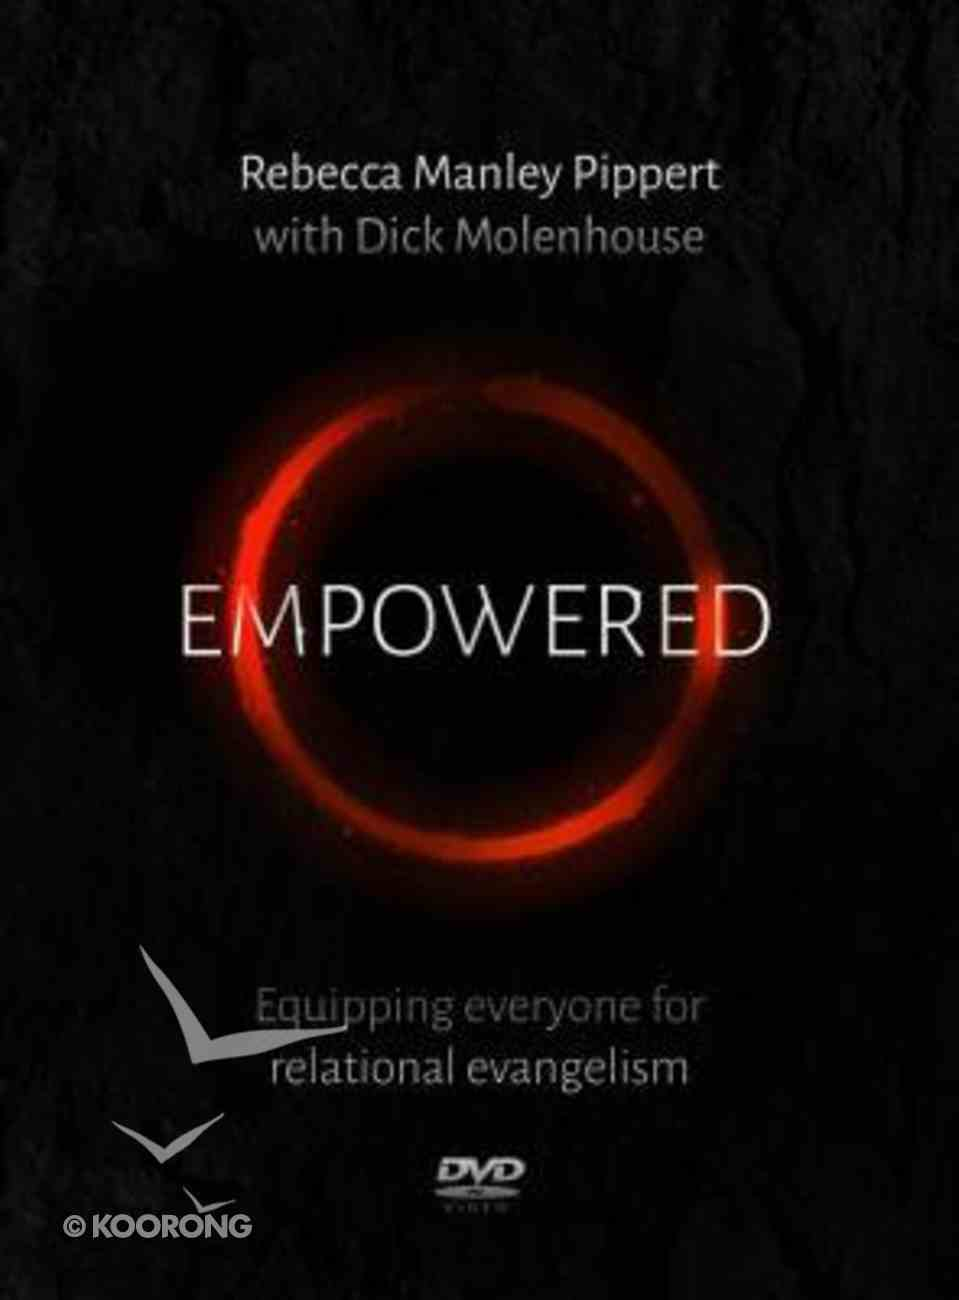 Empowered: Equipping Everyone For Relational Evangelism (Dvd) DVD